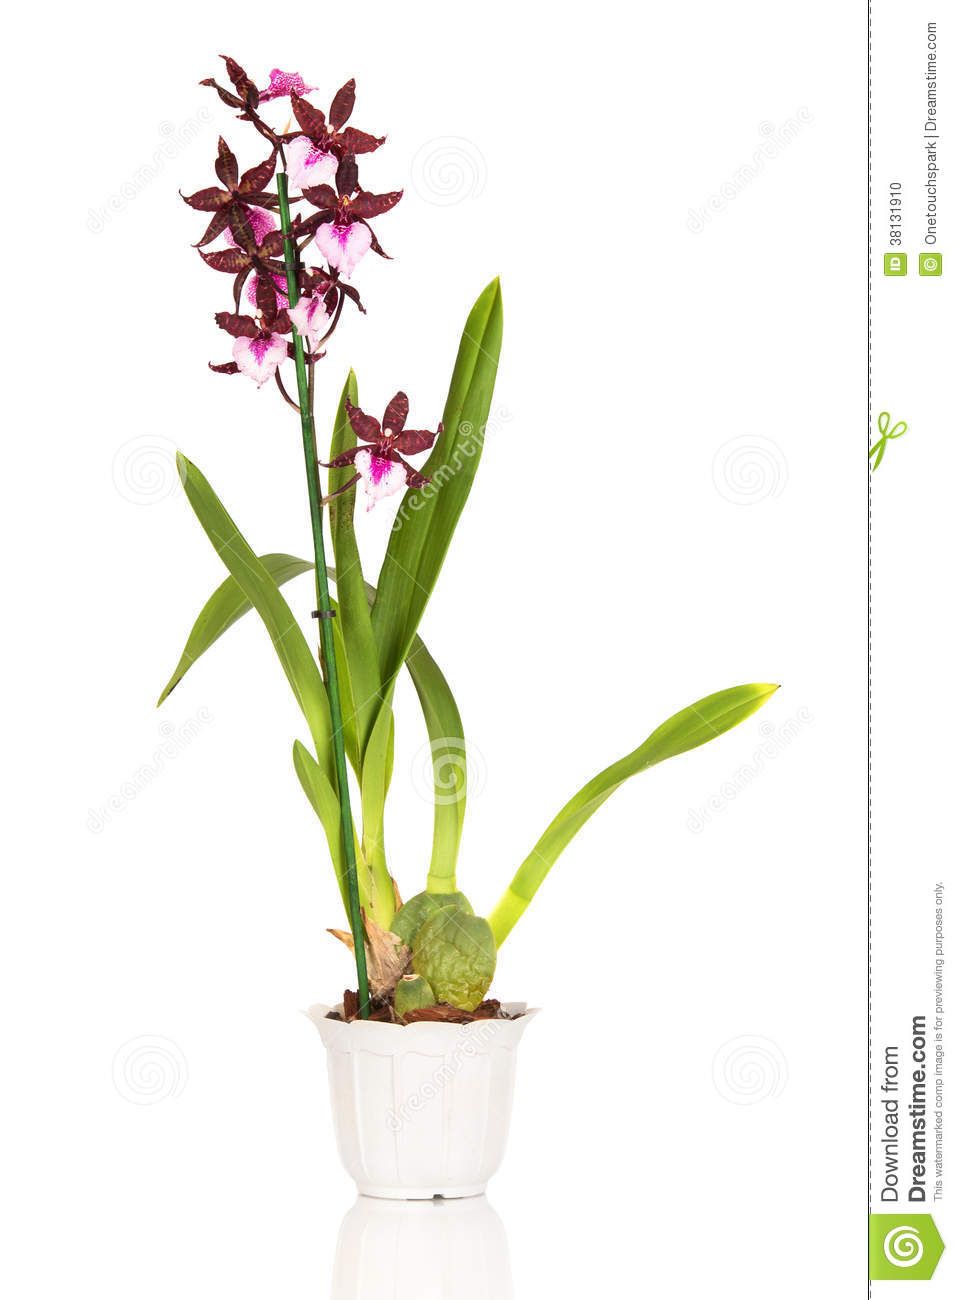 Cambria Orchid Stock Photo - Image: 38131910